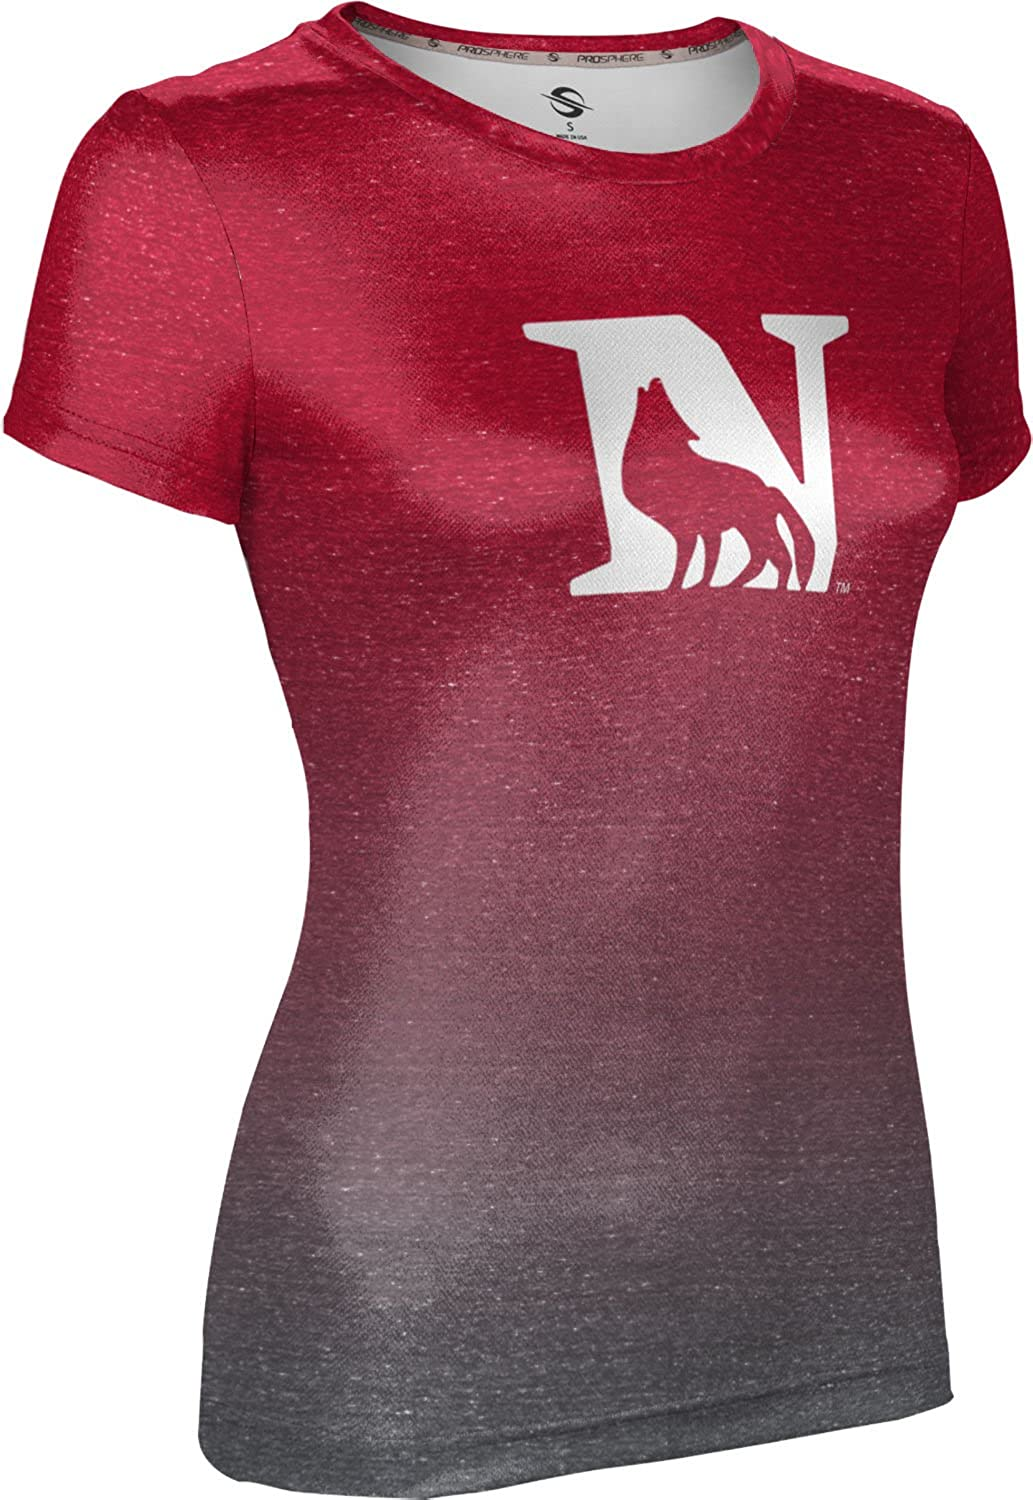 Ombre ProSphere Newberry College University Girls Performance T-Shirt